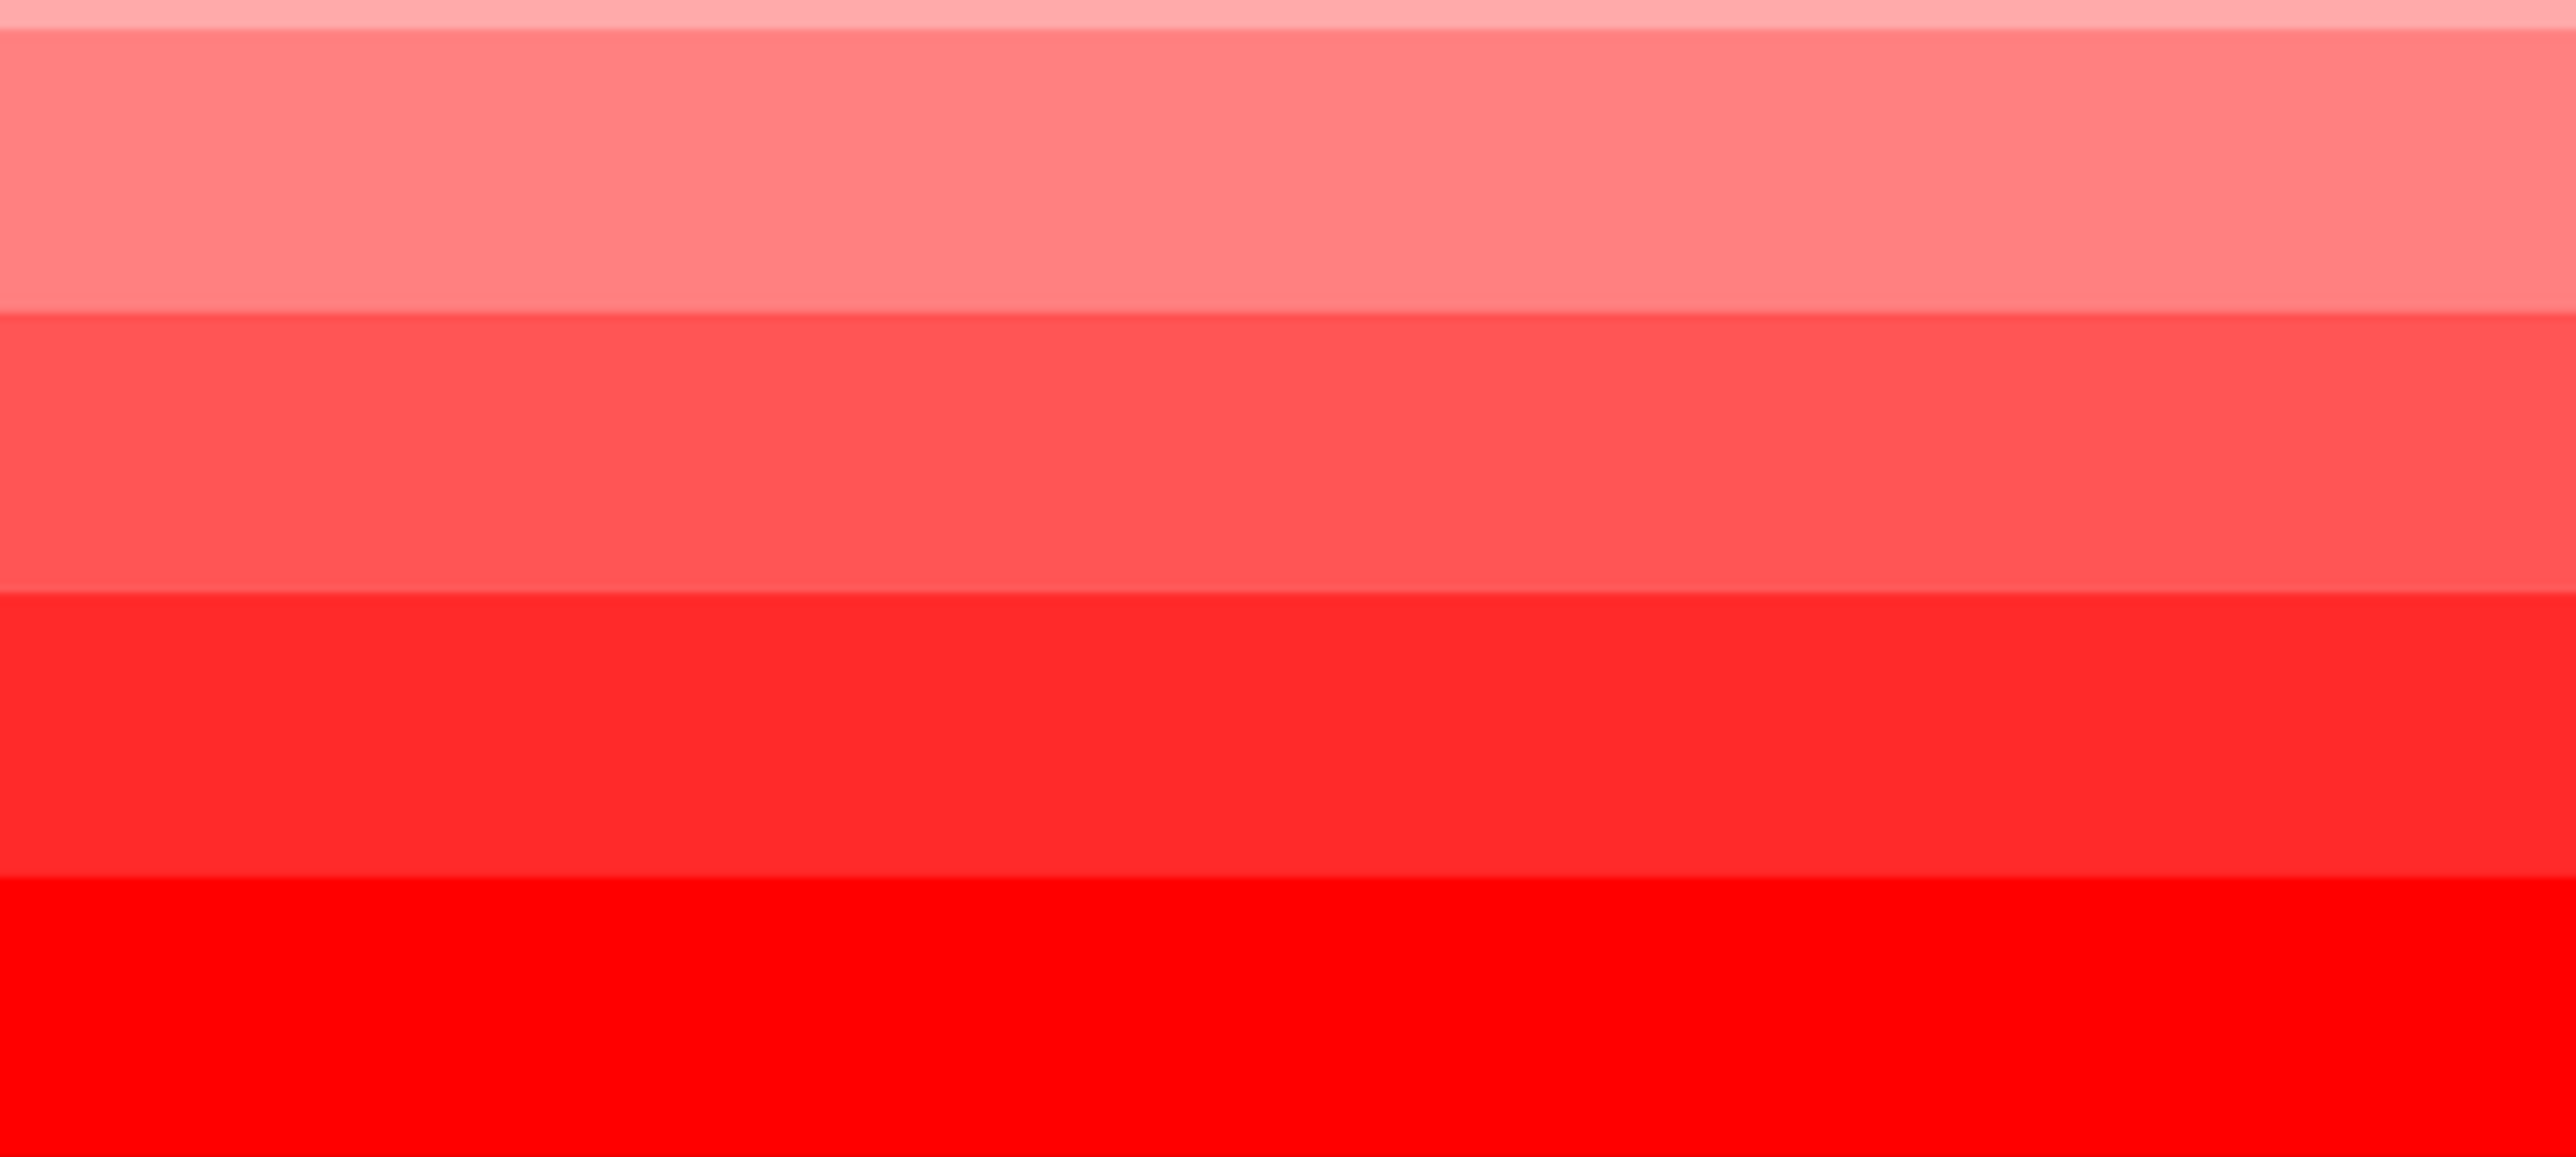 There is a shade of red for every woman